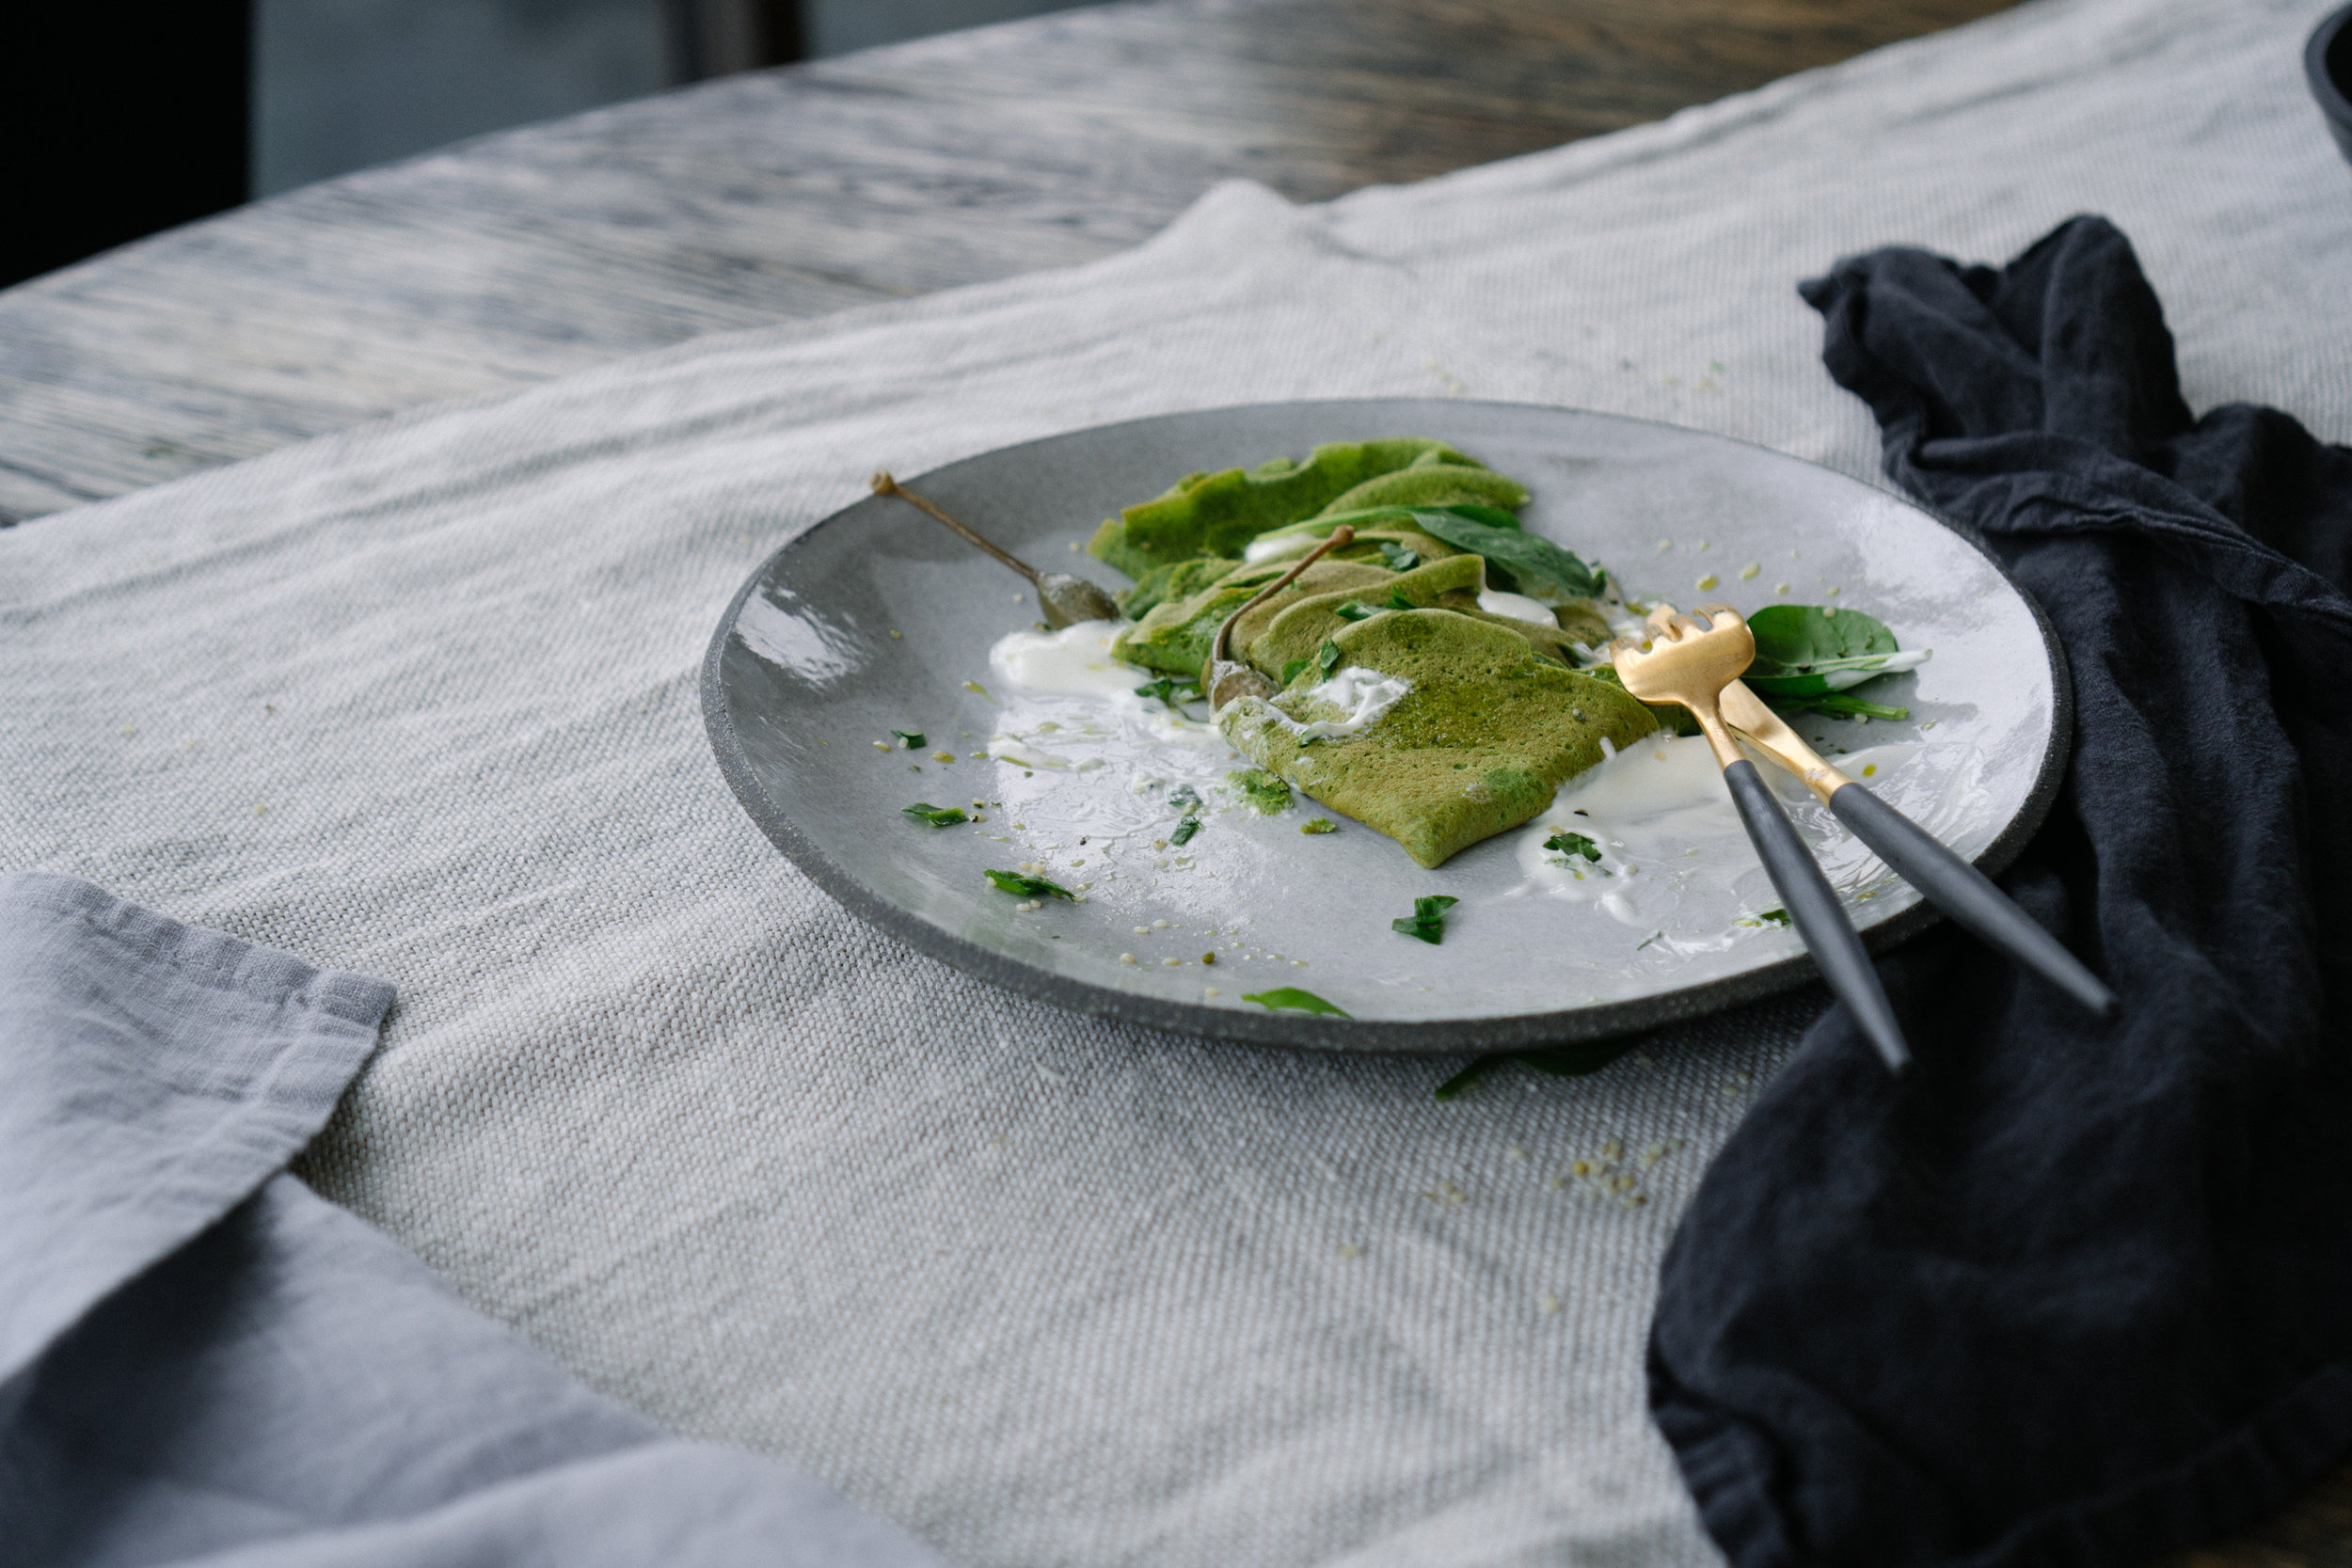 Hemp_Protein_and_Spinach_Crepes_with_Hard_Cheese-7.jpg